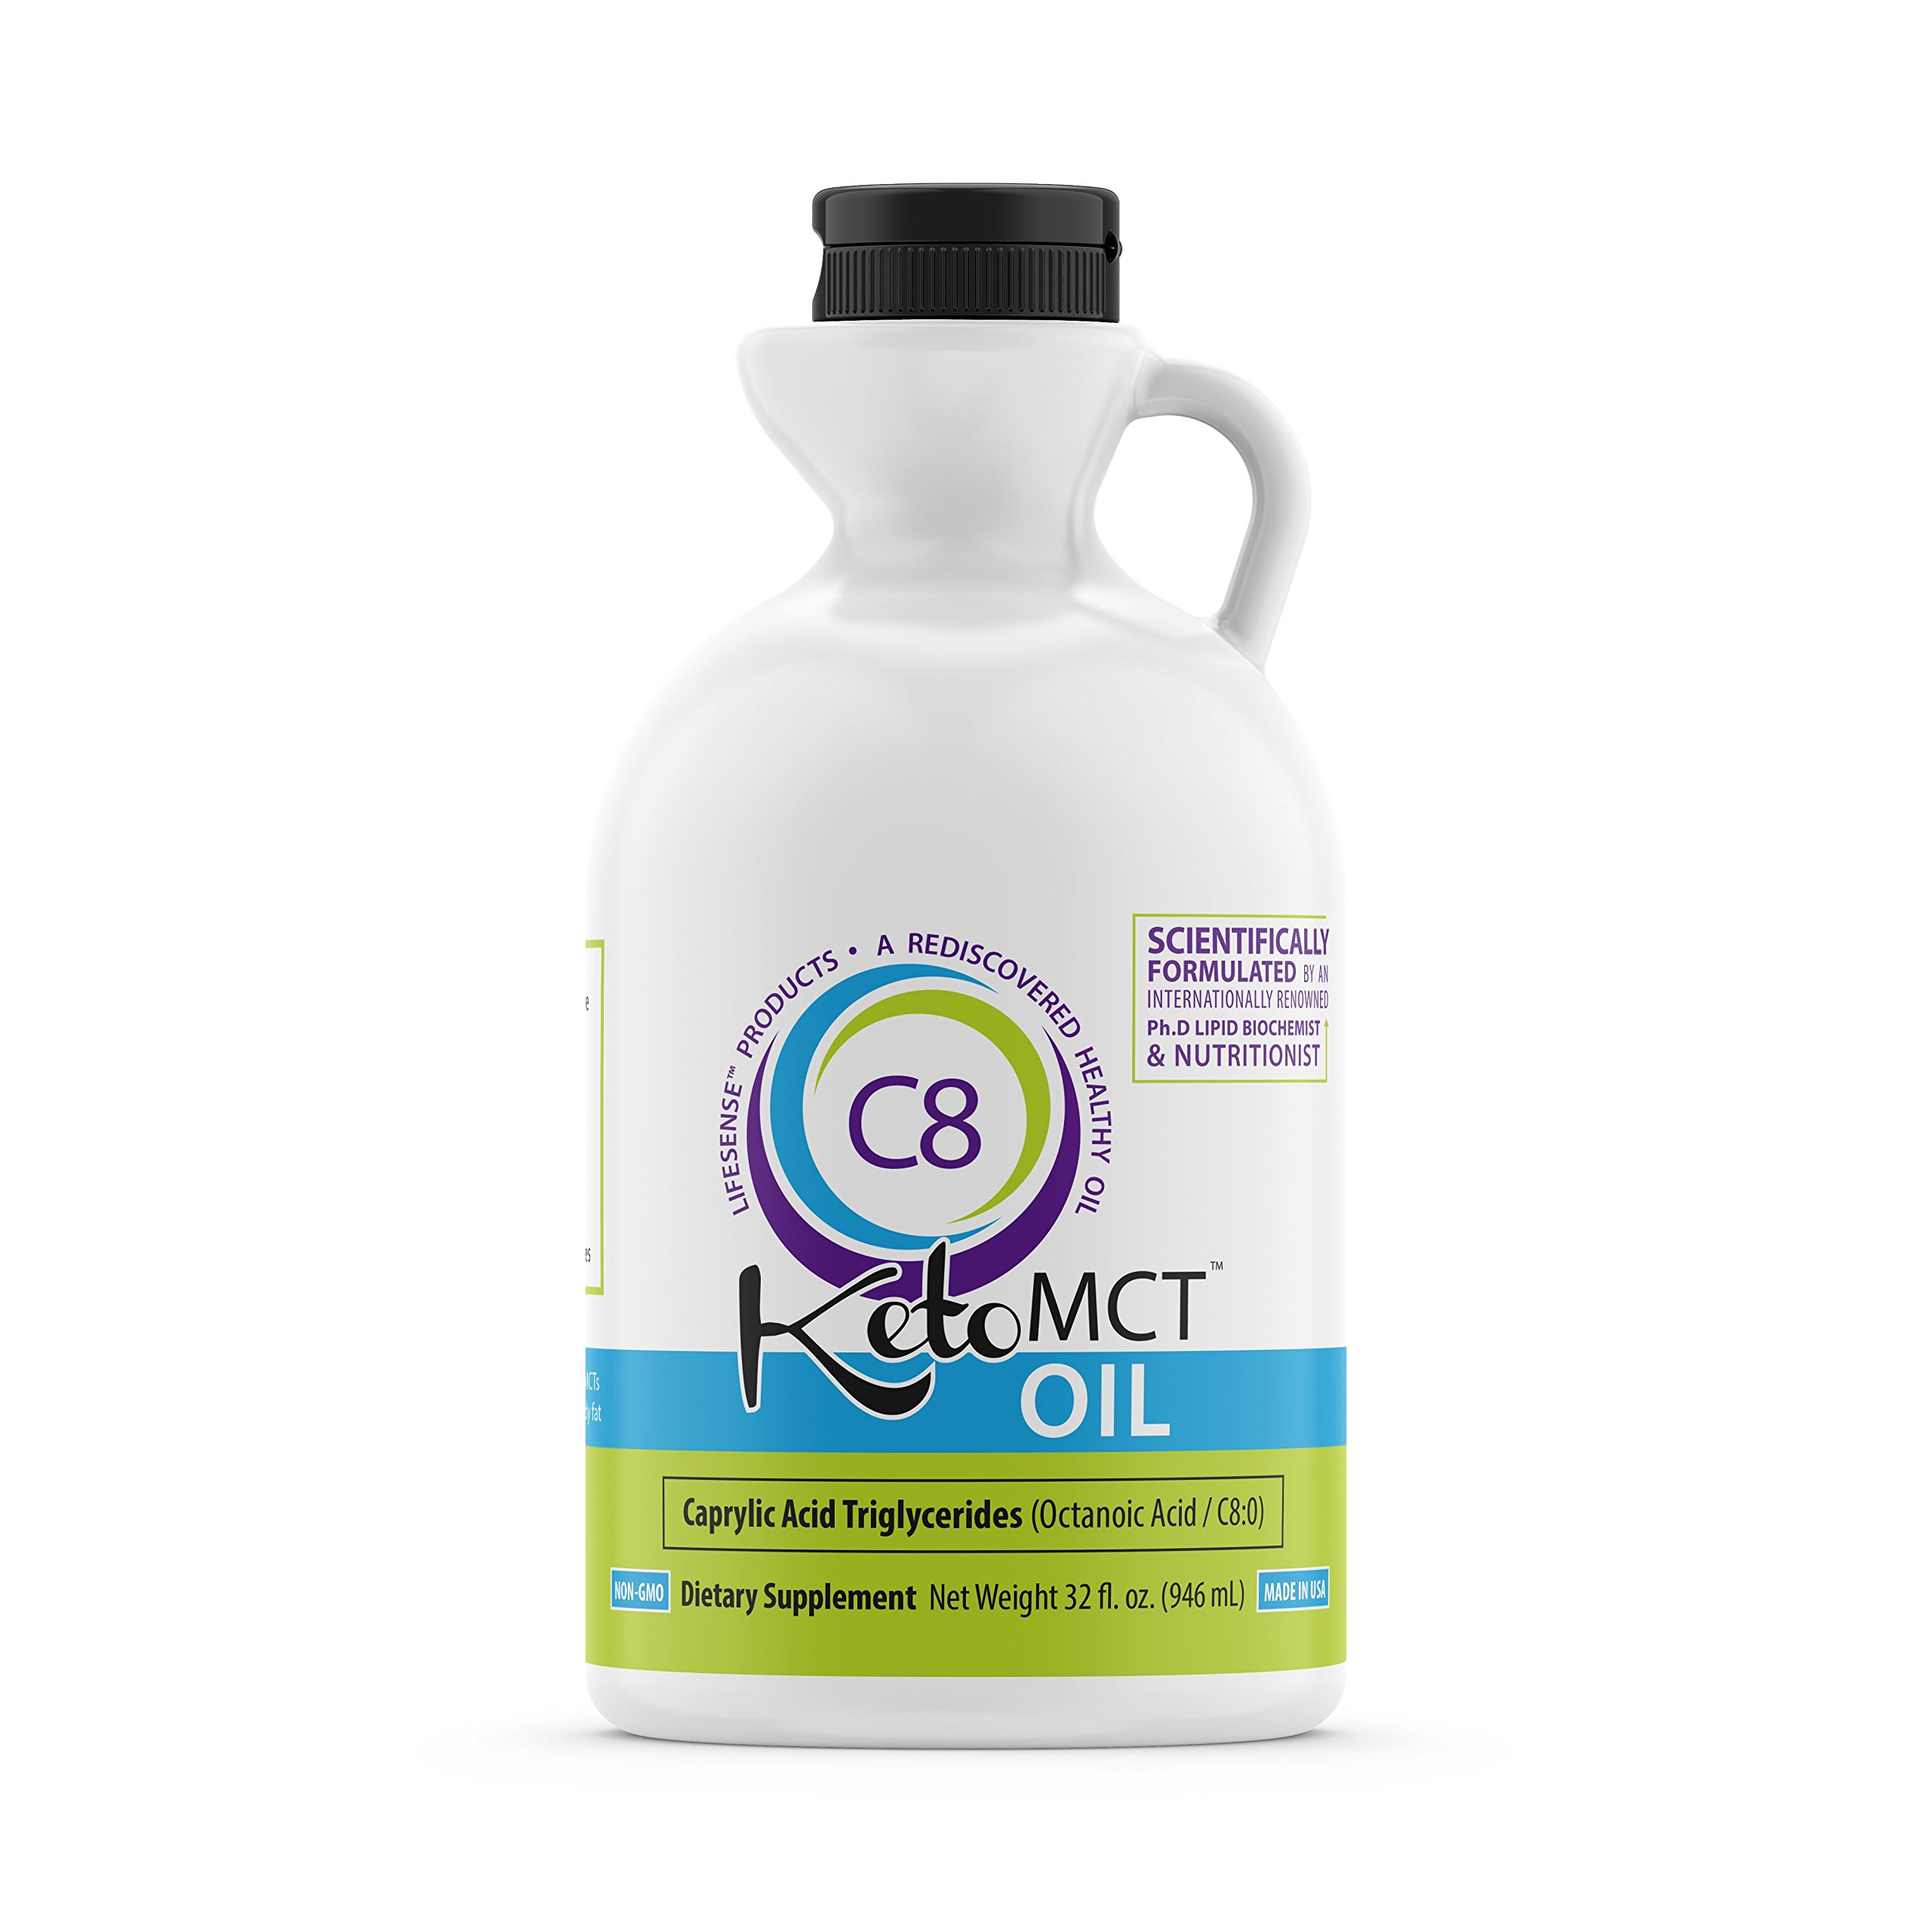 Premium C8 MCT oil, 32 oz, Custom easy pour Bottle, Pure MOST POTENT on the MARKET, Developed by world-class Ph. D doctor and professor of nutrition, trusted choice of Practitioners, made in USA